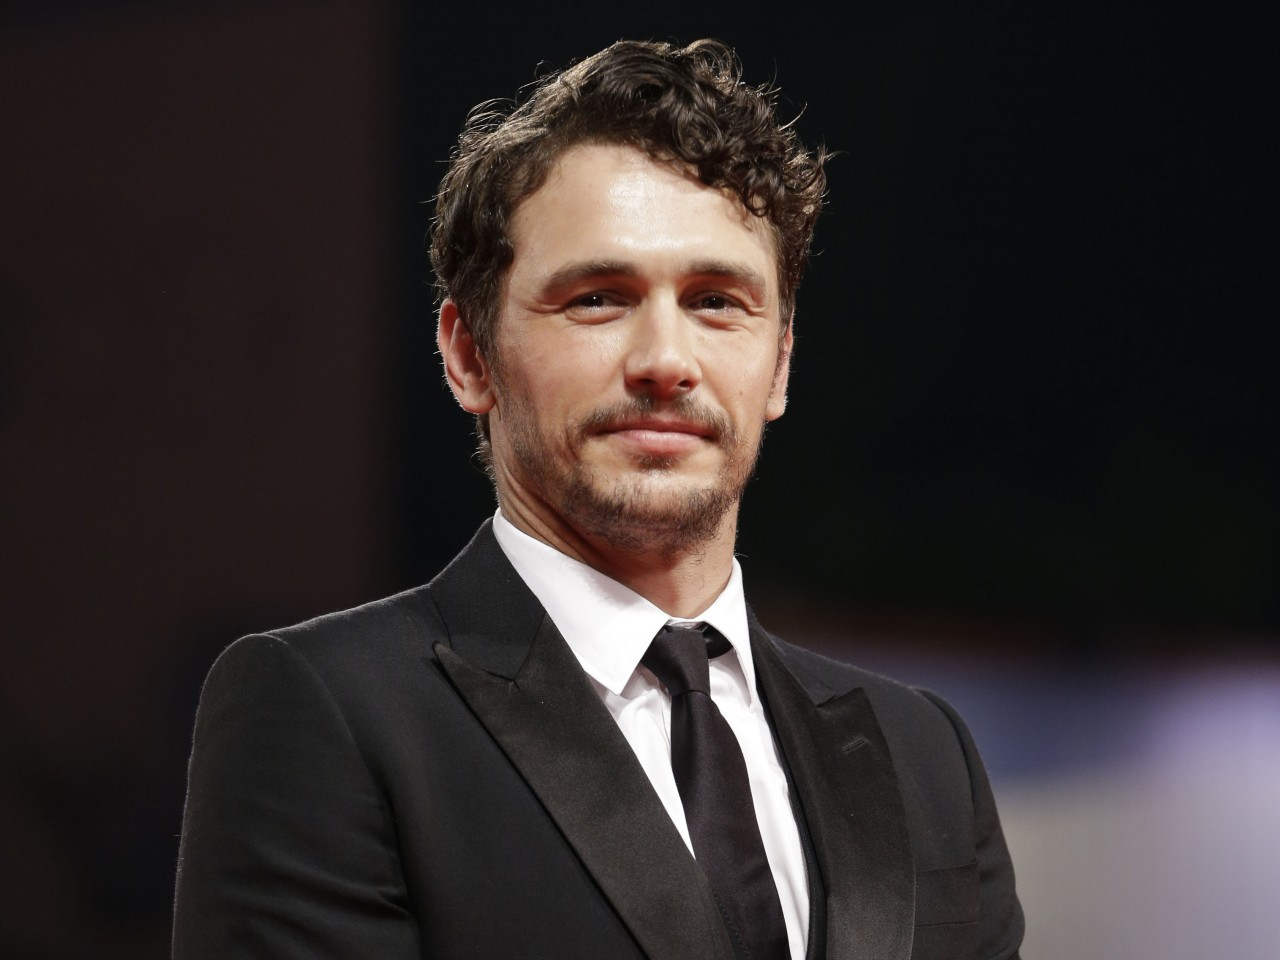 James Franco Height Weight Age Affairs Girlfriend Body Stats Details